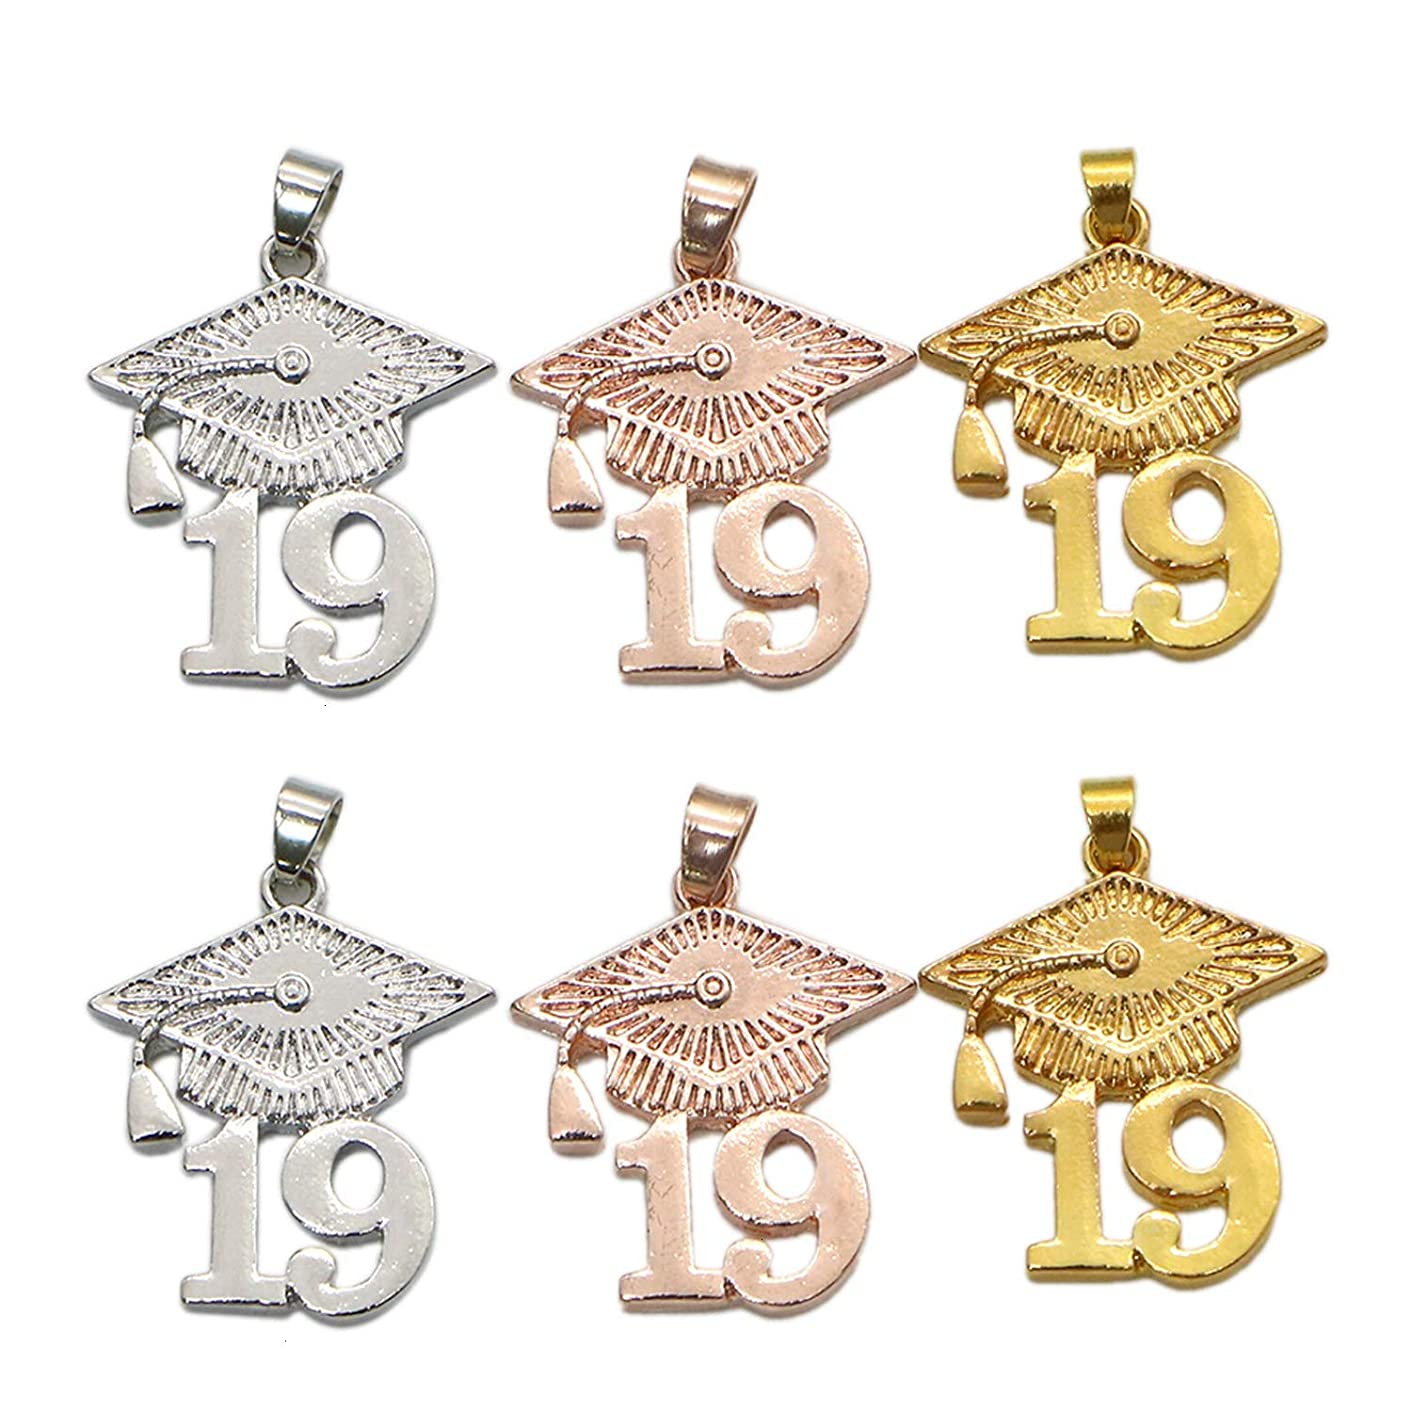 Monrocco 6Pcs 3 Colors 2019 Graduation Charms Graduation Cap Pendant for Jewelry Making and Crafting